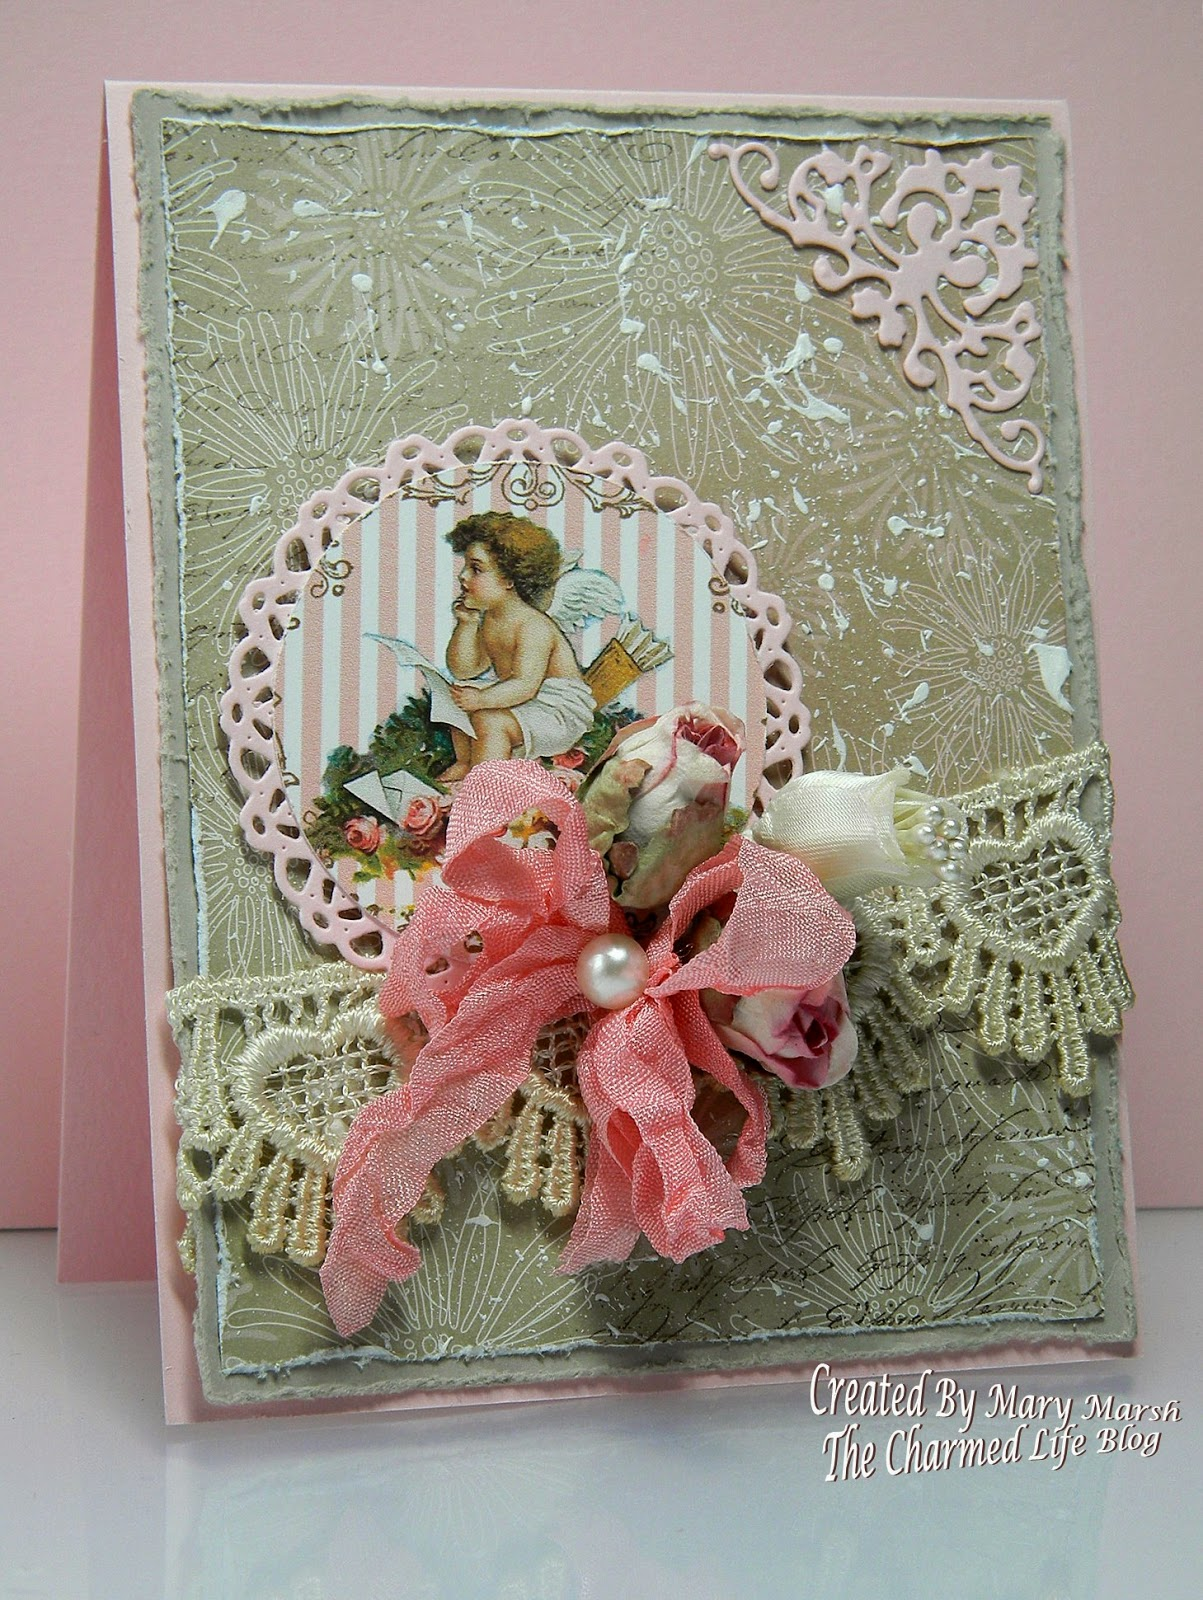 The Charmed Life: A Little Shabby Chic